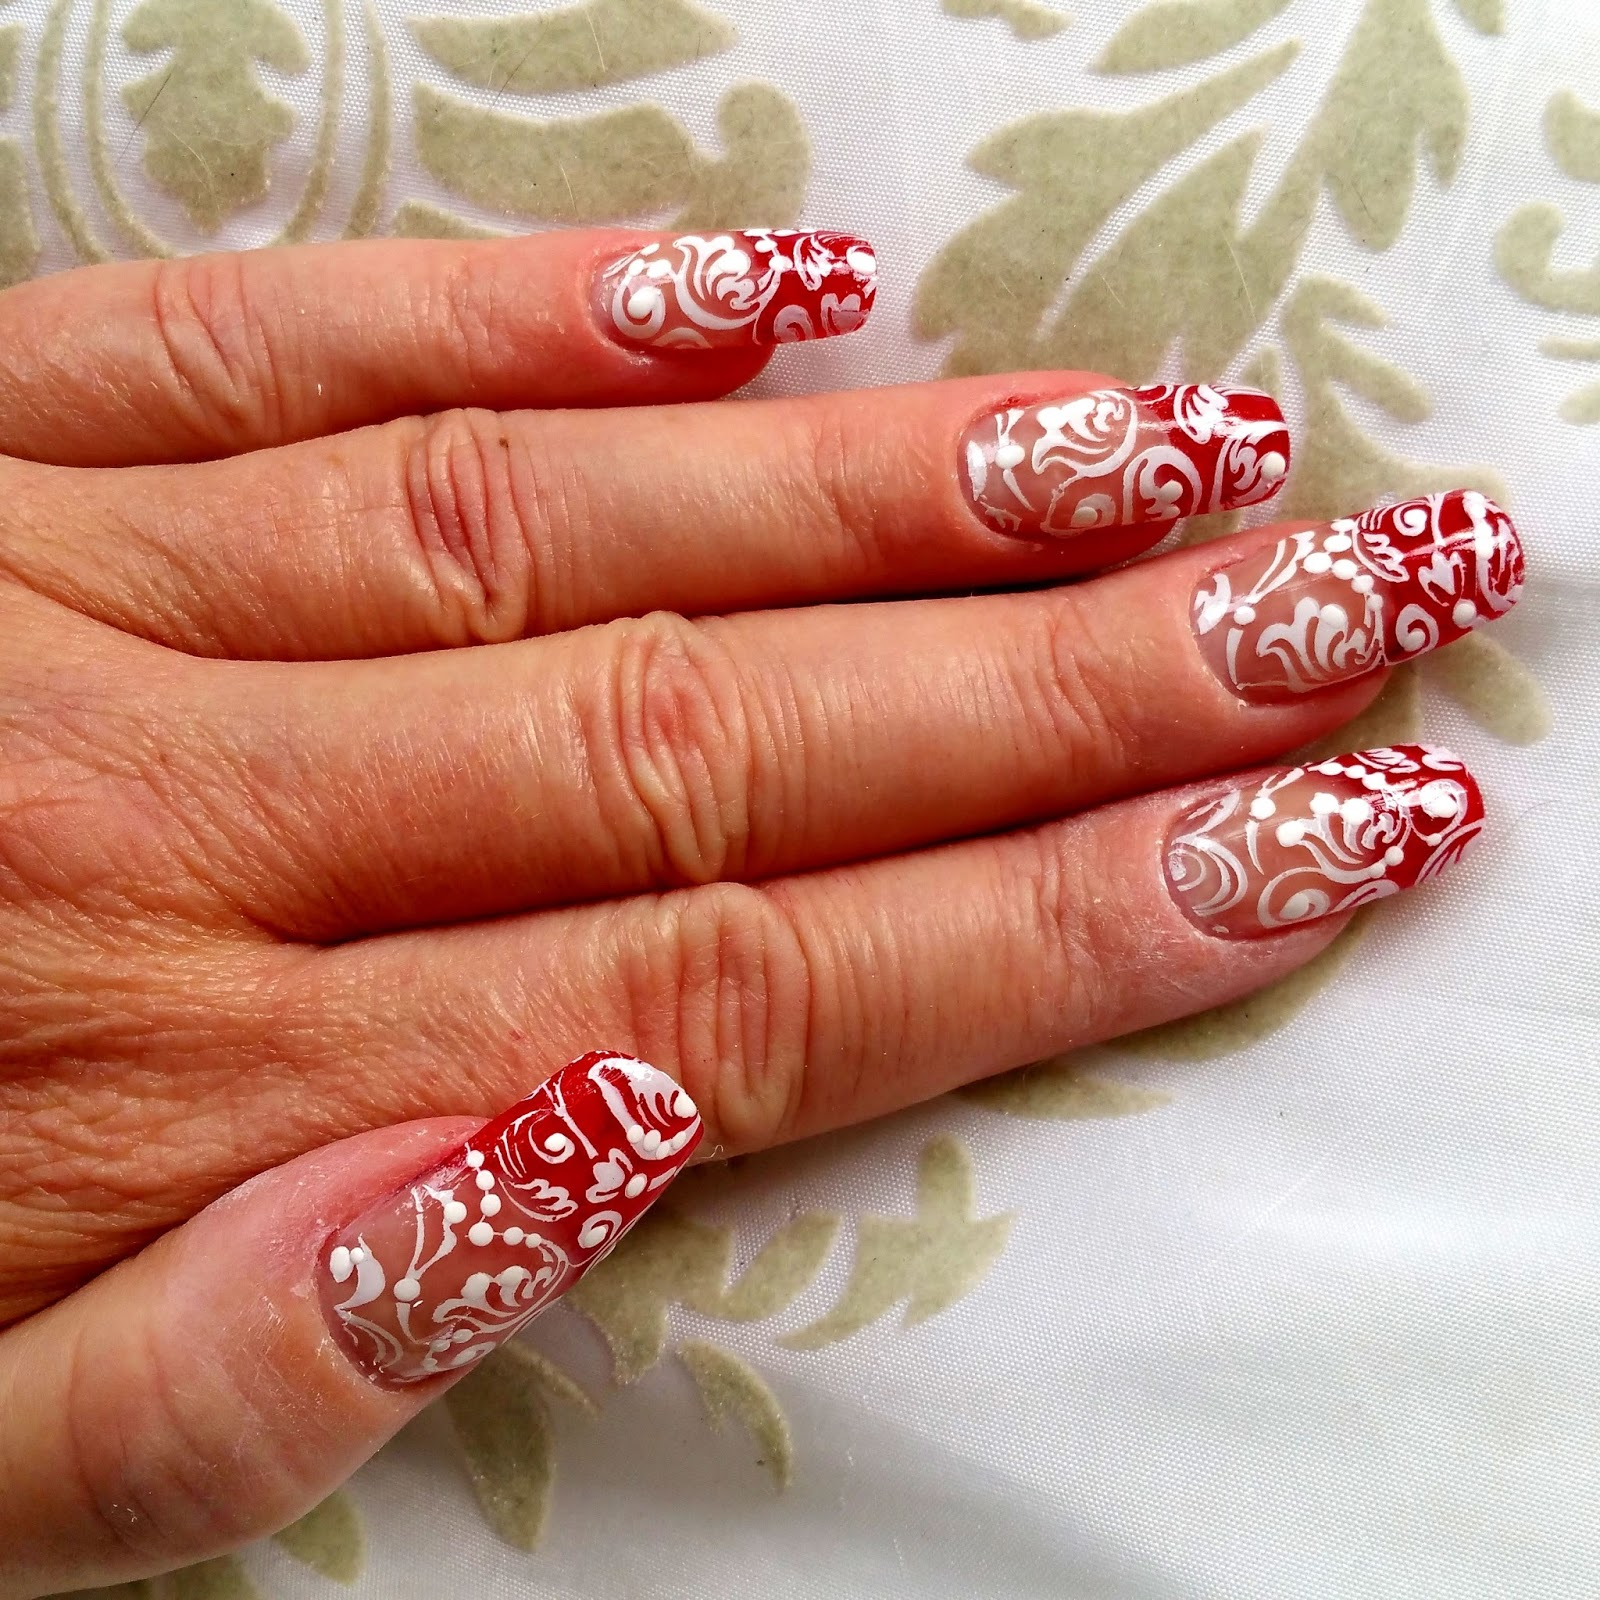 Nailways Scarlet Royalty French Manicure Nailart